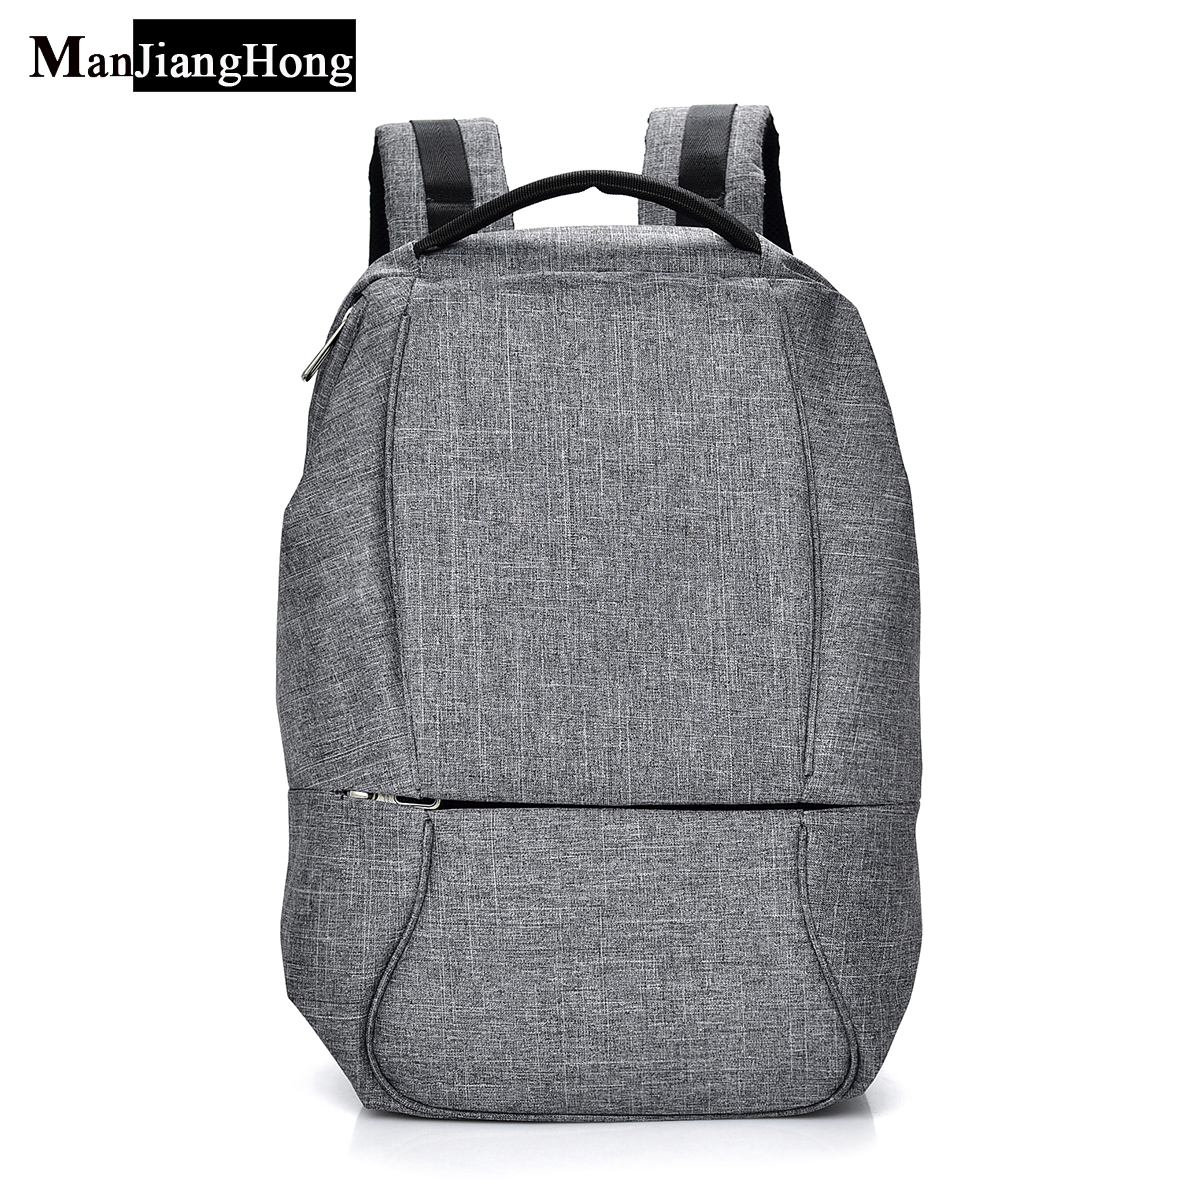 2018 Unisex Design Backpack Book Bags For College Students Casual Rucksack Daypack Oxford Canvas Laptop Fashion Man Backpacks best laptop backpacks cool mens custom rucksack back pack womens college computer backpack bags for man business travel work